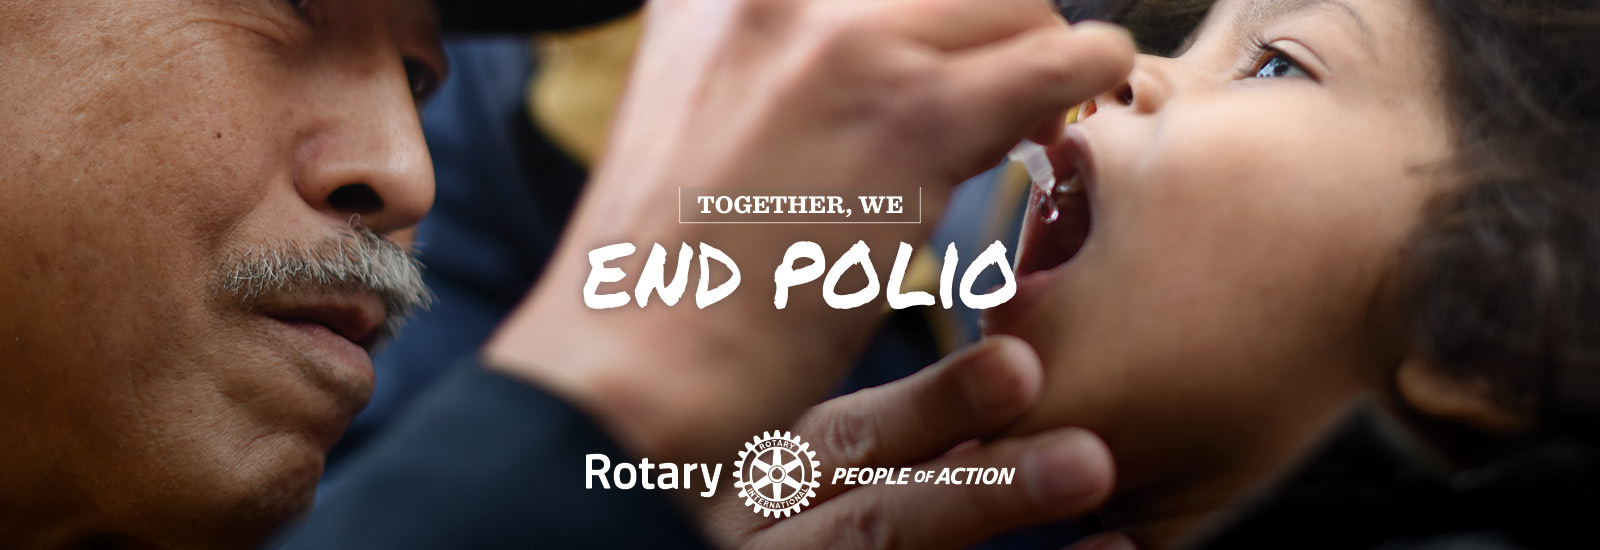 Rotary People of Action Polio